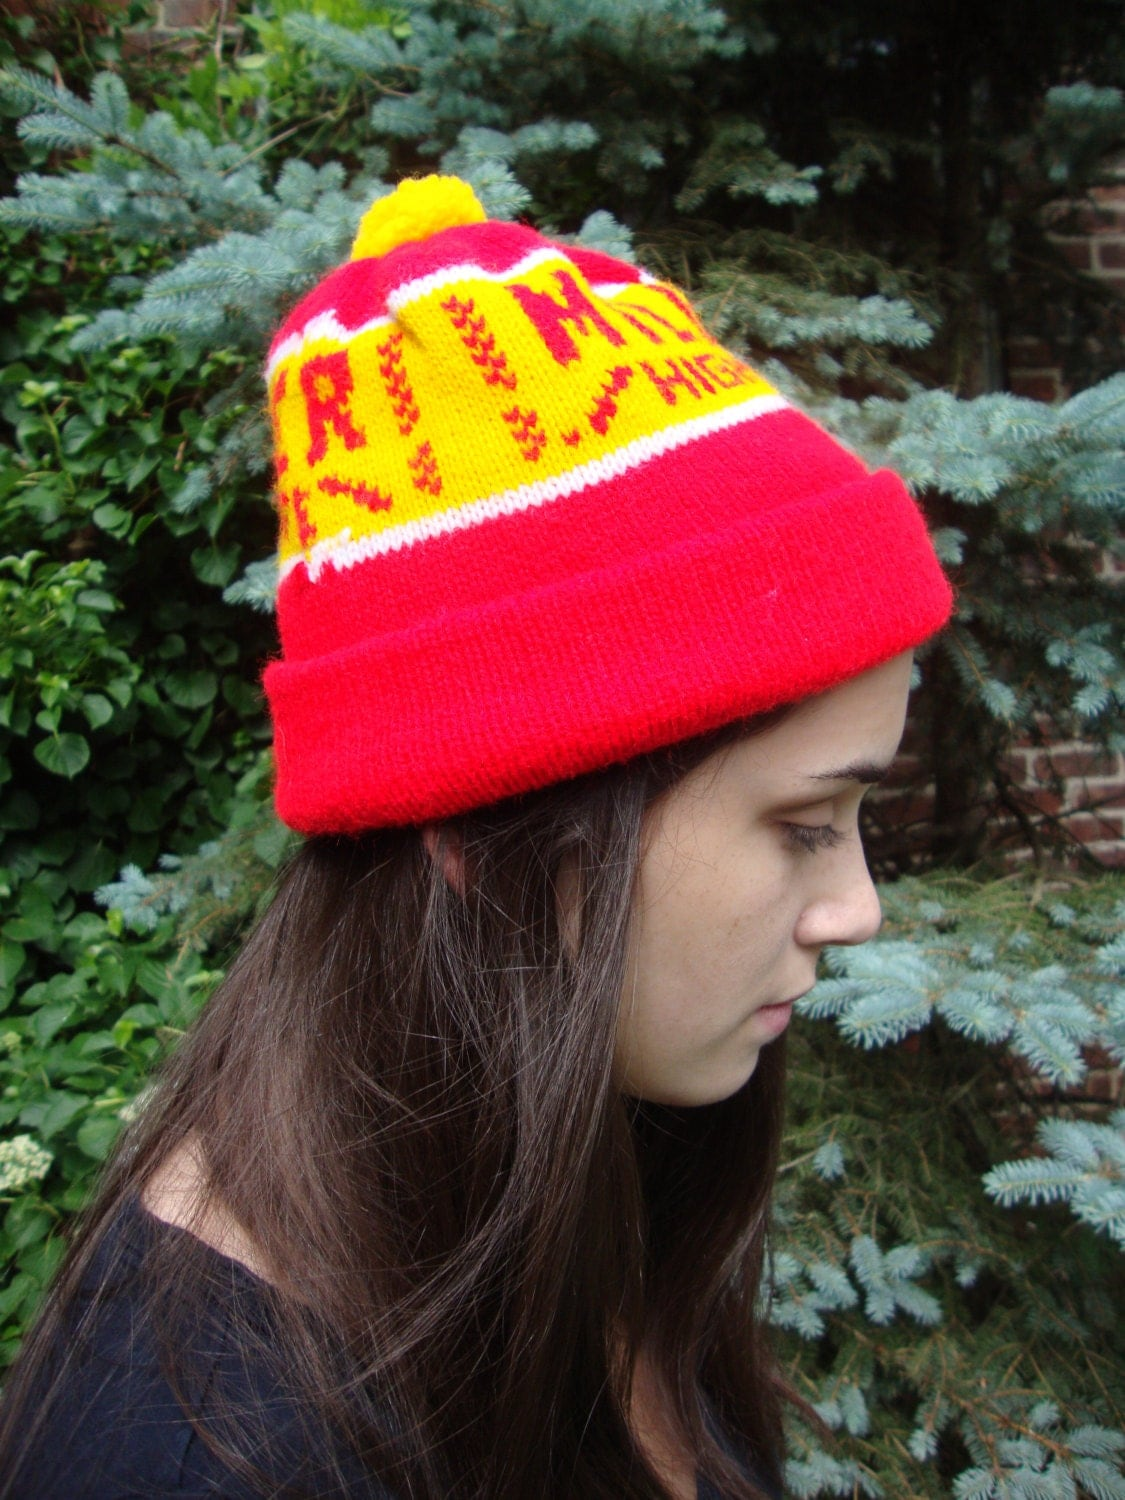 Unique Miller High Life Beer Hat Ski Cap Knit By Onebluenote